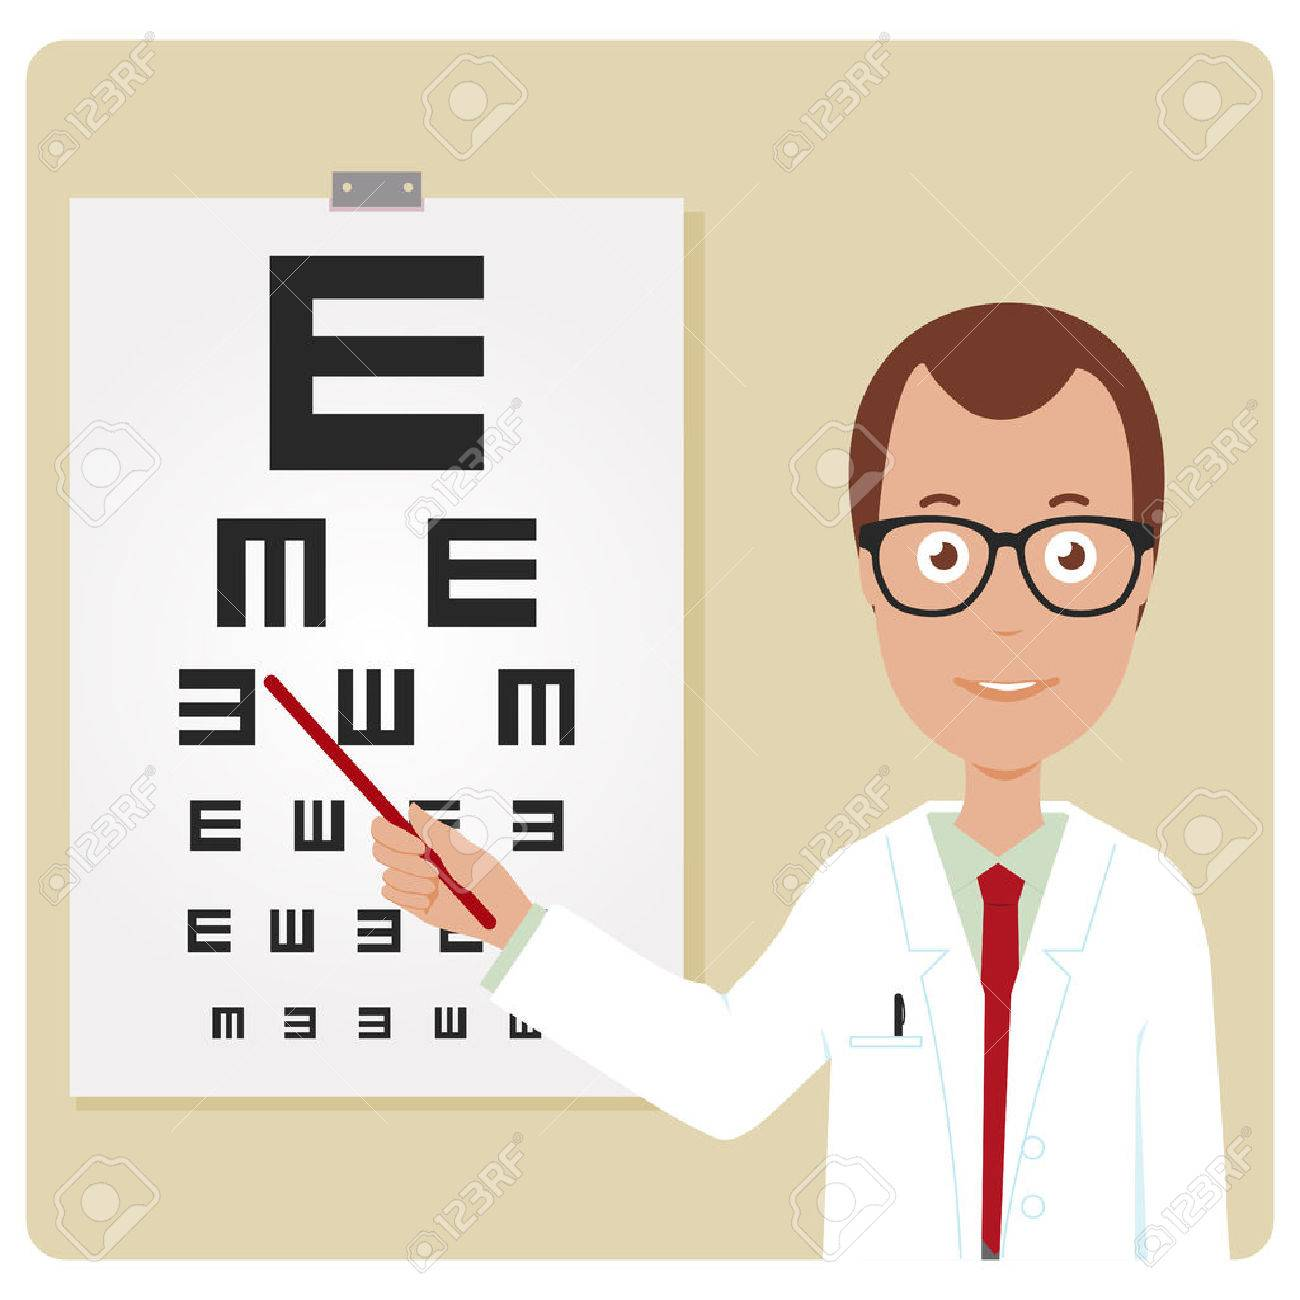 Ophthalmologist examining a patient using the eye chart royalty ophthalmologist examining a patient using the eye chart stock vector 42559412 nvjuhfo Choice Image